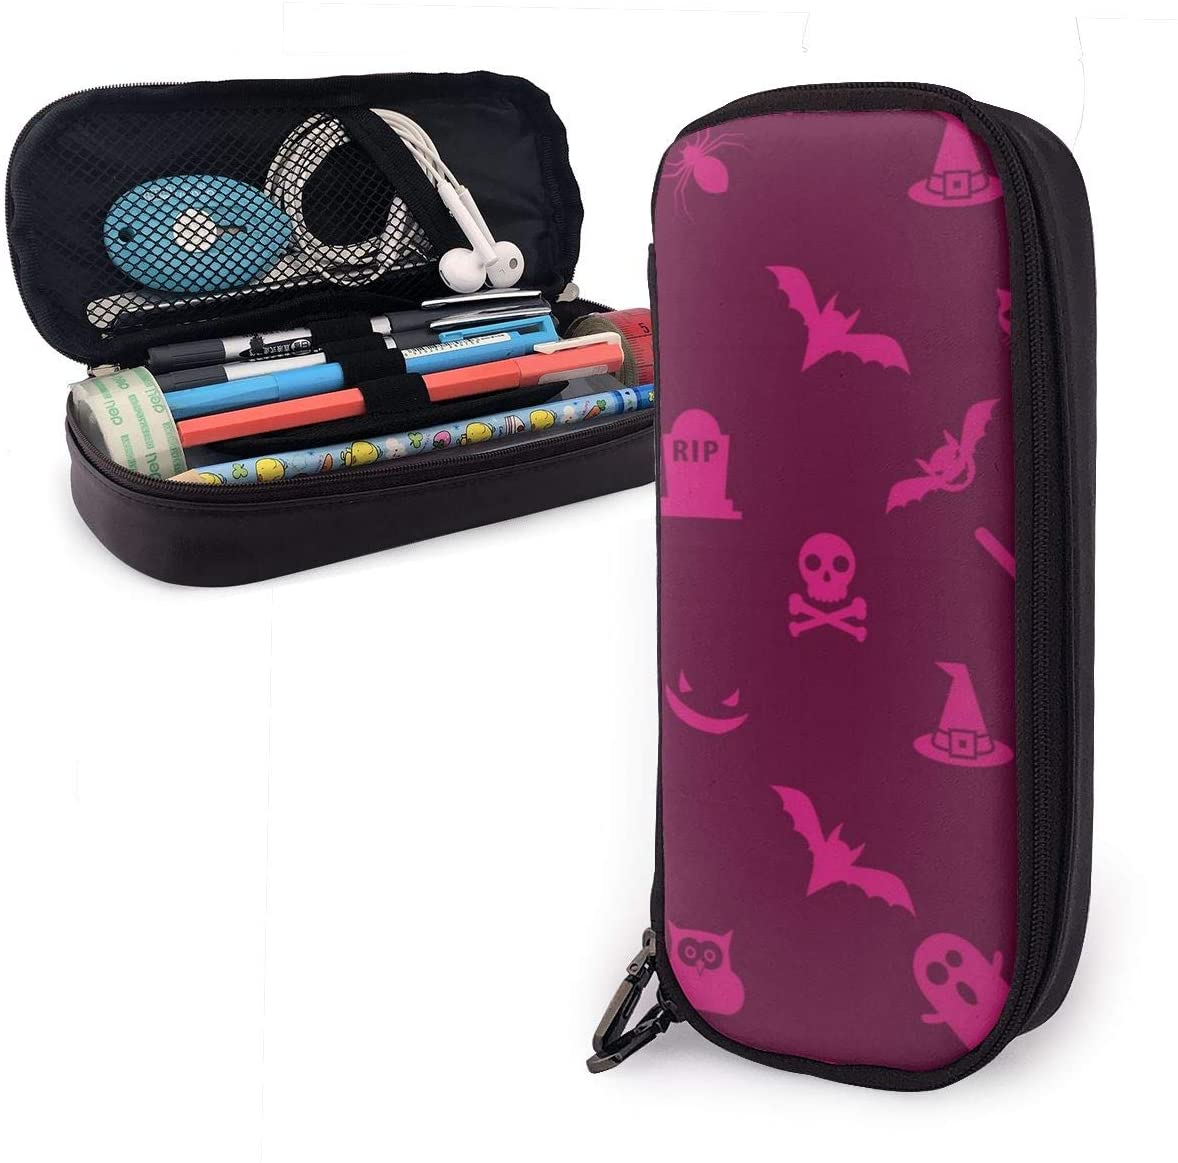 Pencil Bag Pen Case Students Stationery Pouch Zipper Pen Case Box for Pens Pencils Drawing Painting Kids - Large Capacity Toiletry Bag